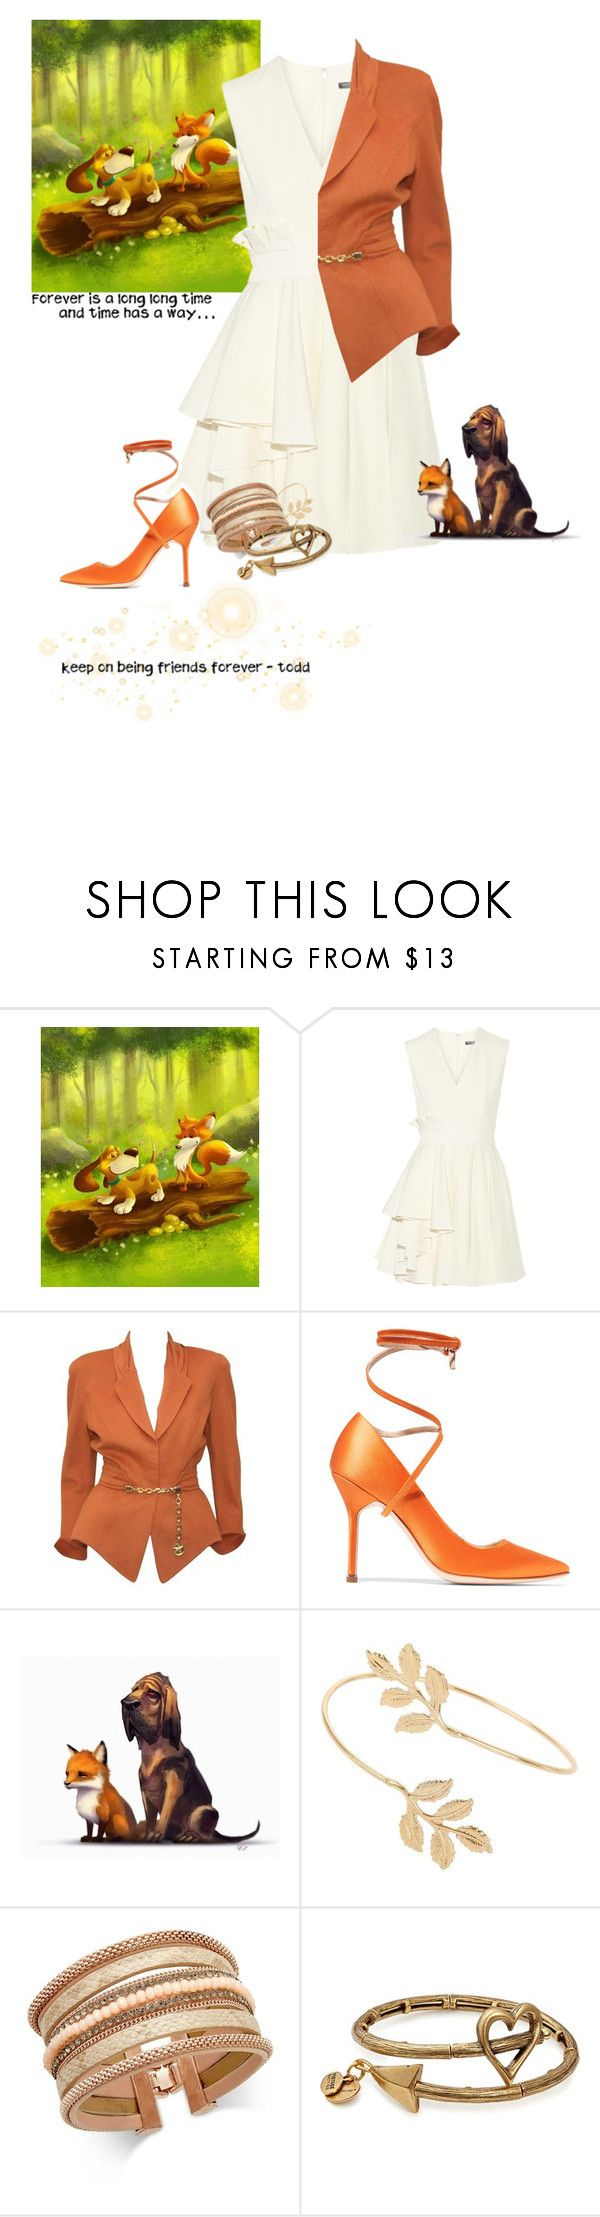 """Todd - The Fox and the Hound"" by krgood7 ❤ liked on Polyvore featuring Alexander McQueen, Thierry Mugler, Vetements, Miss Selfridge, INC International Concepts and Alex and Ani"